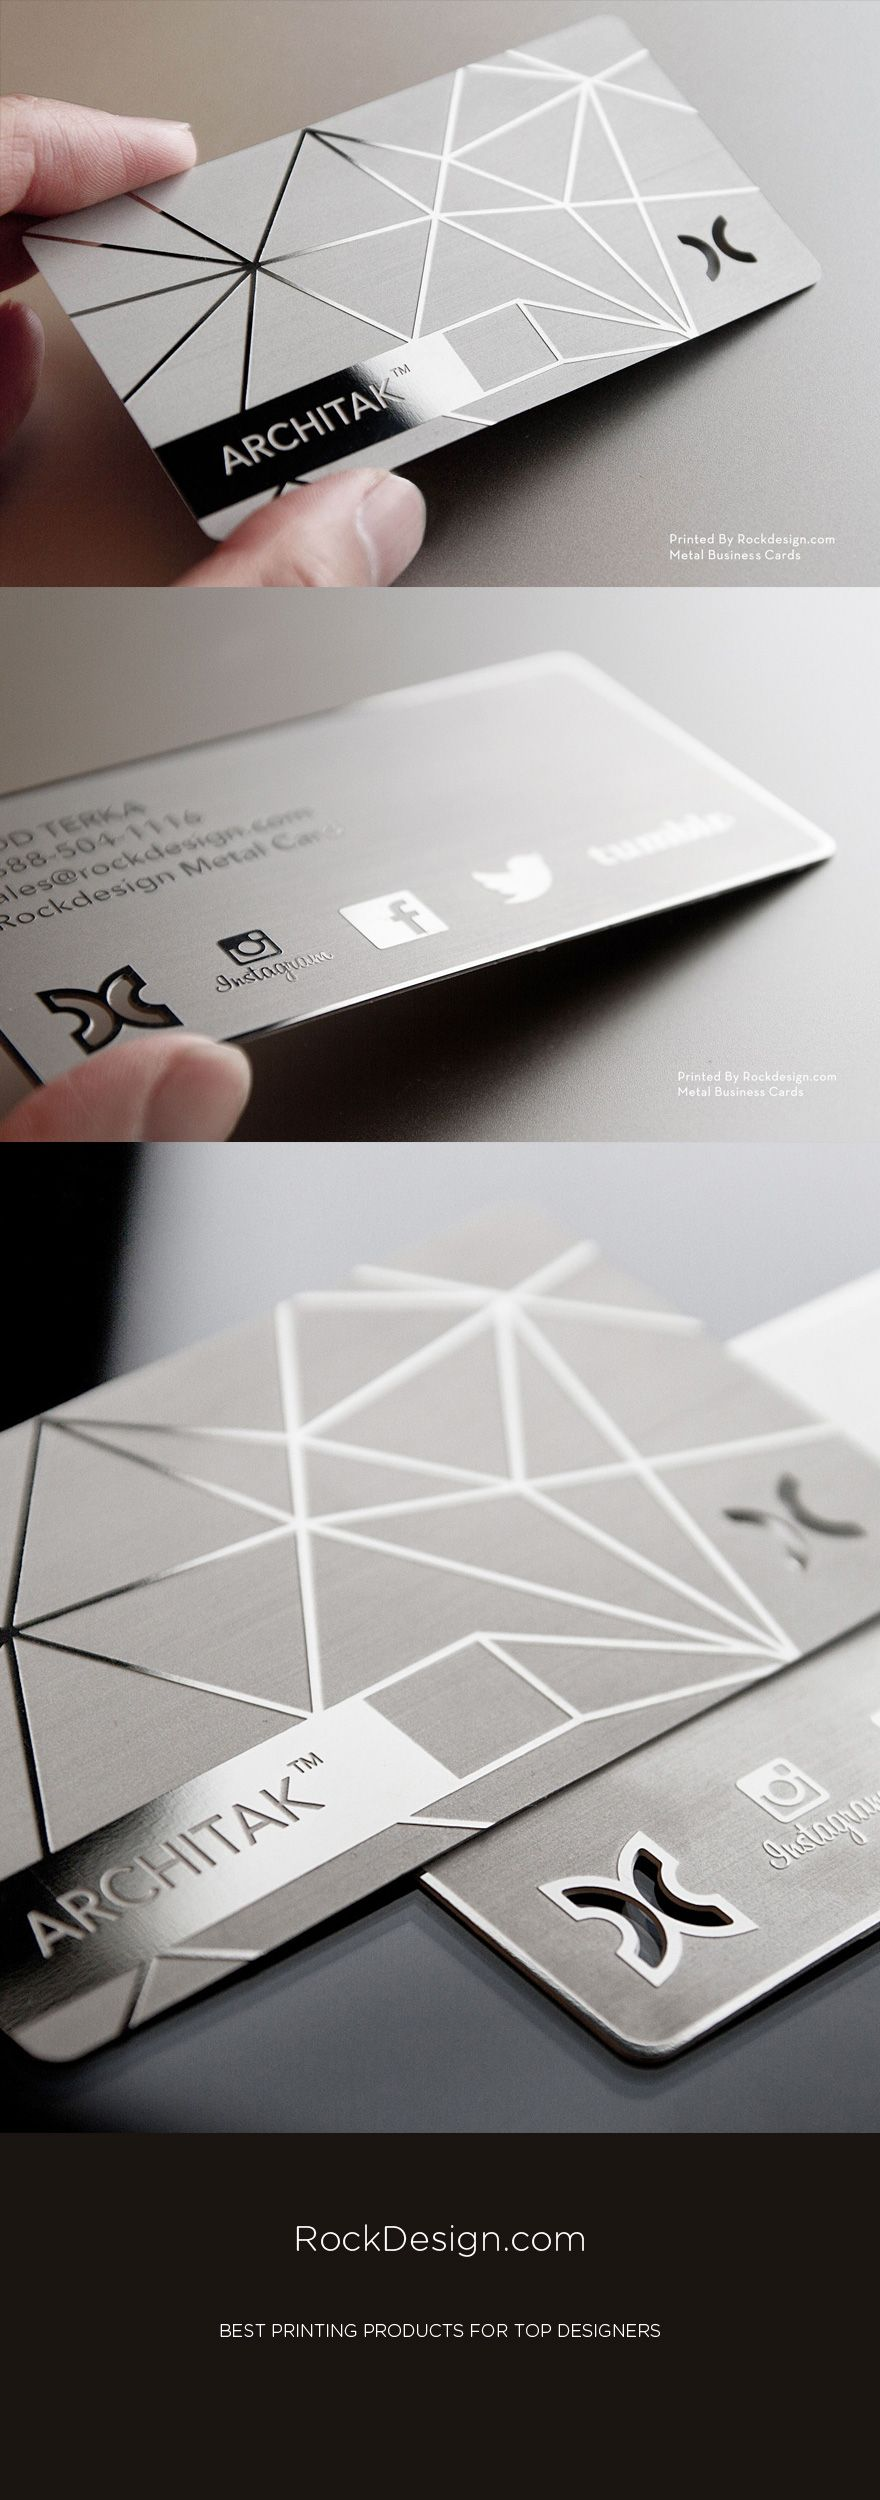 slick letterpress white minimalist design business card for a